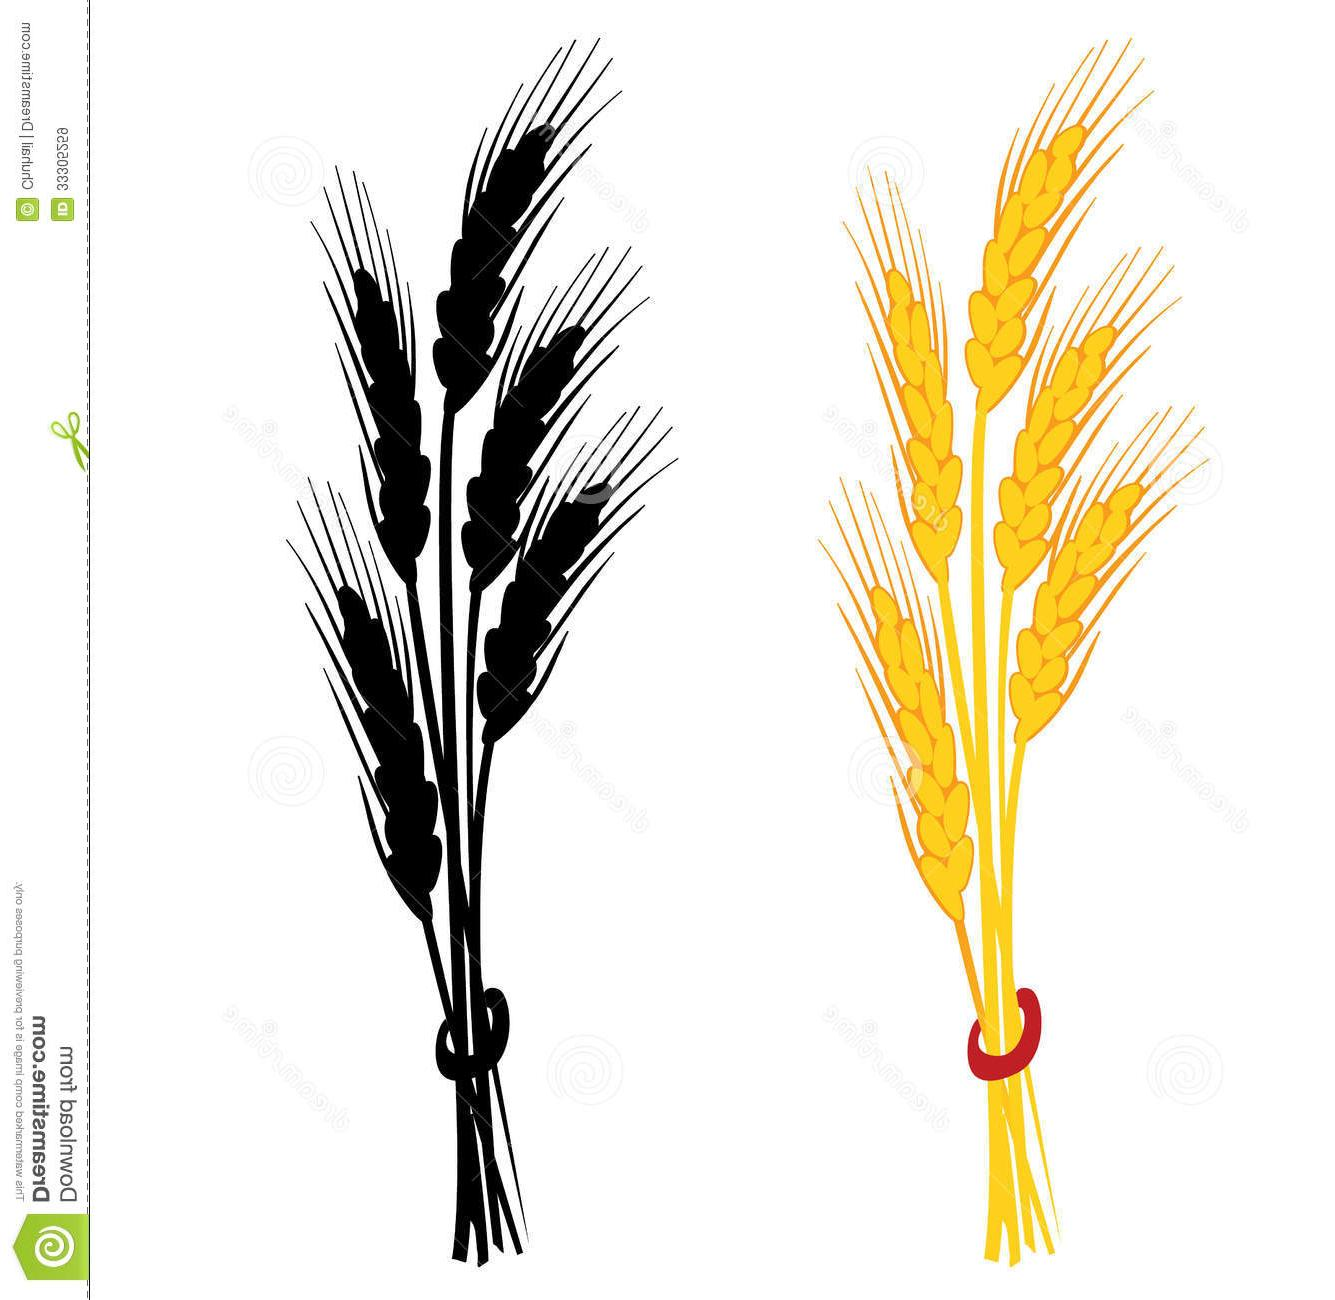 1335x1300 Best Wheat Ear Vector Illustration Yellow Black Silhouette